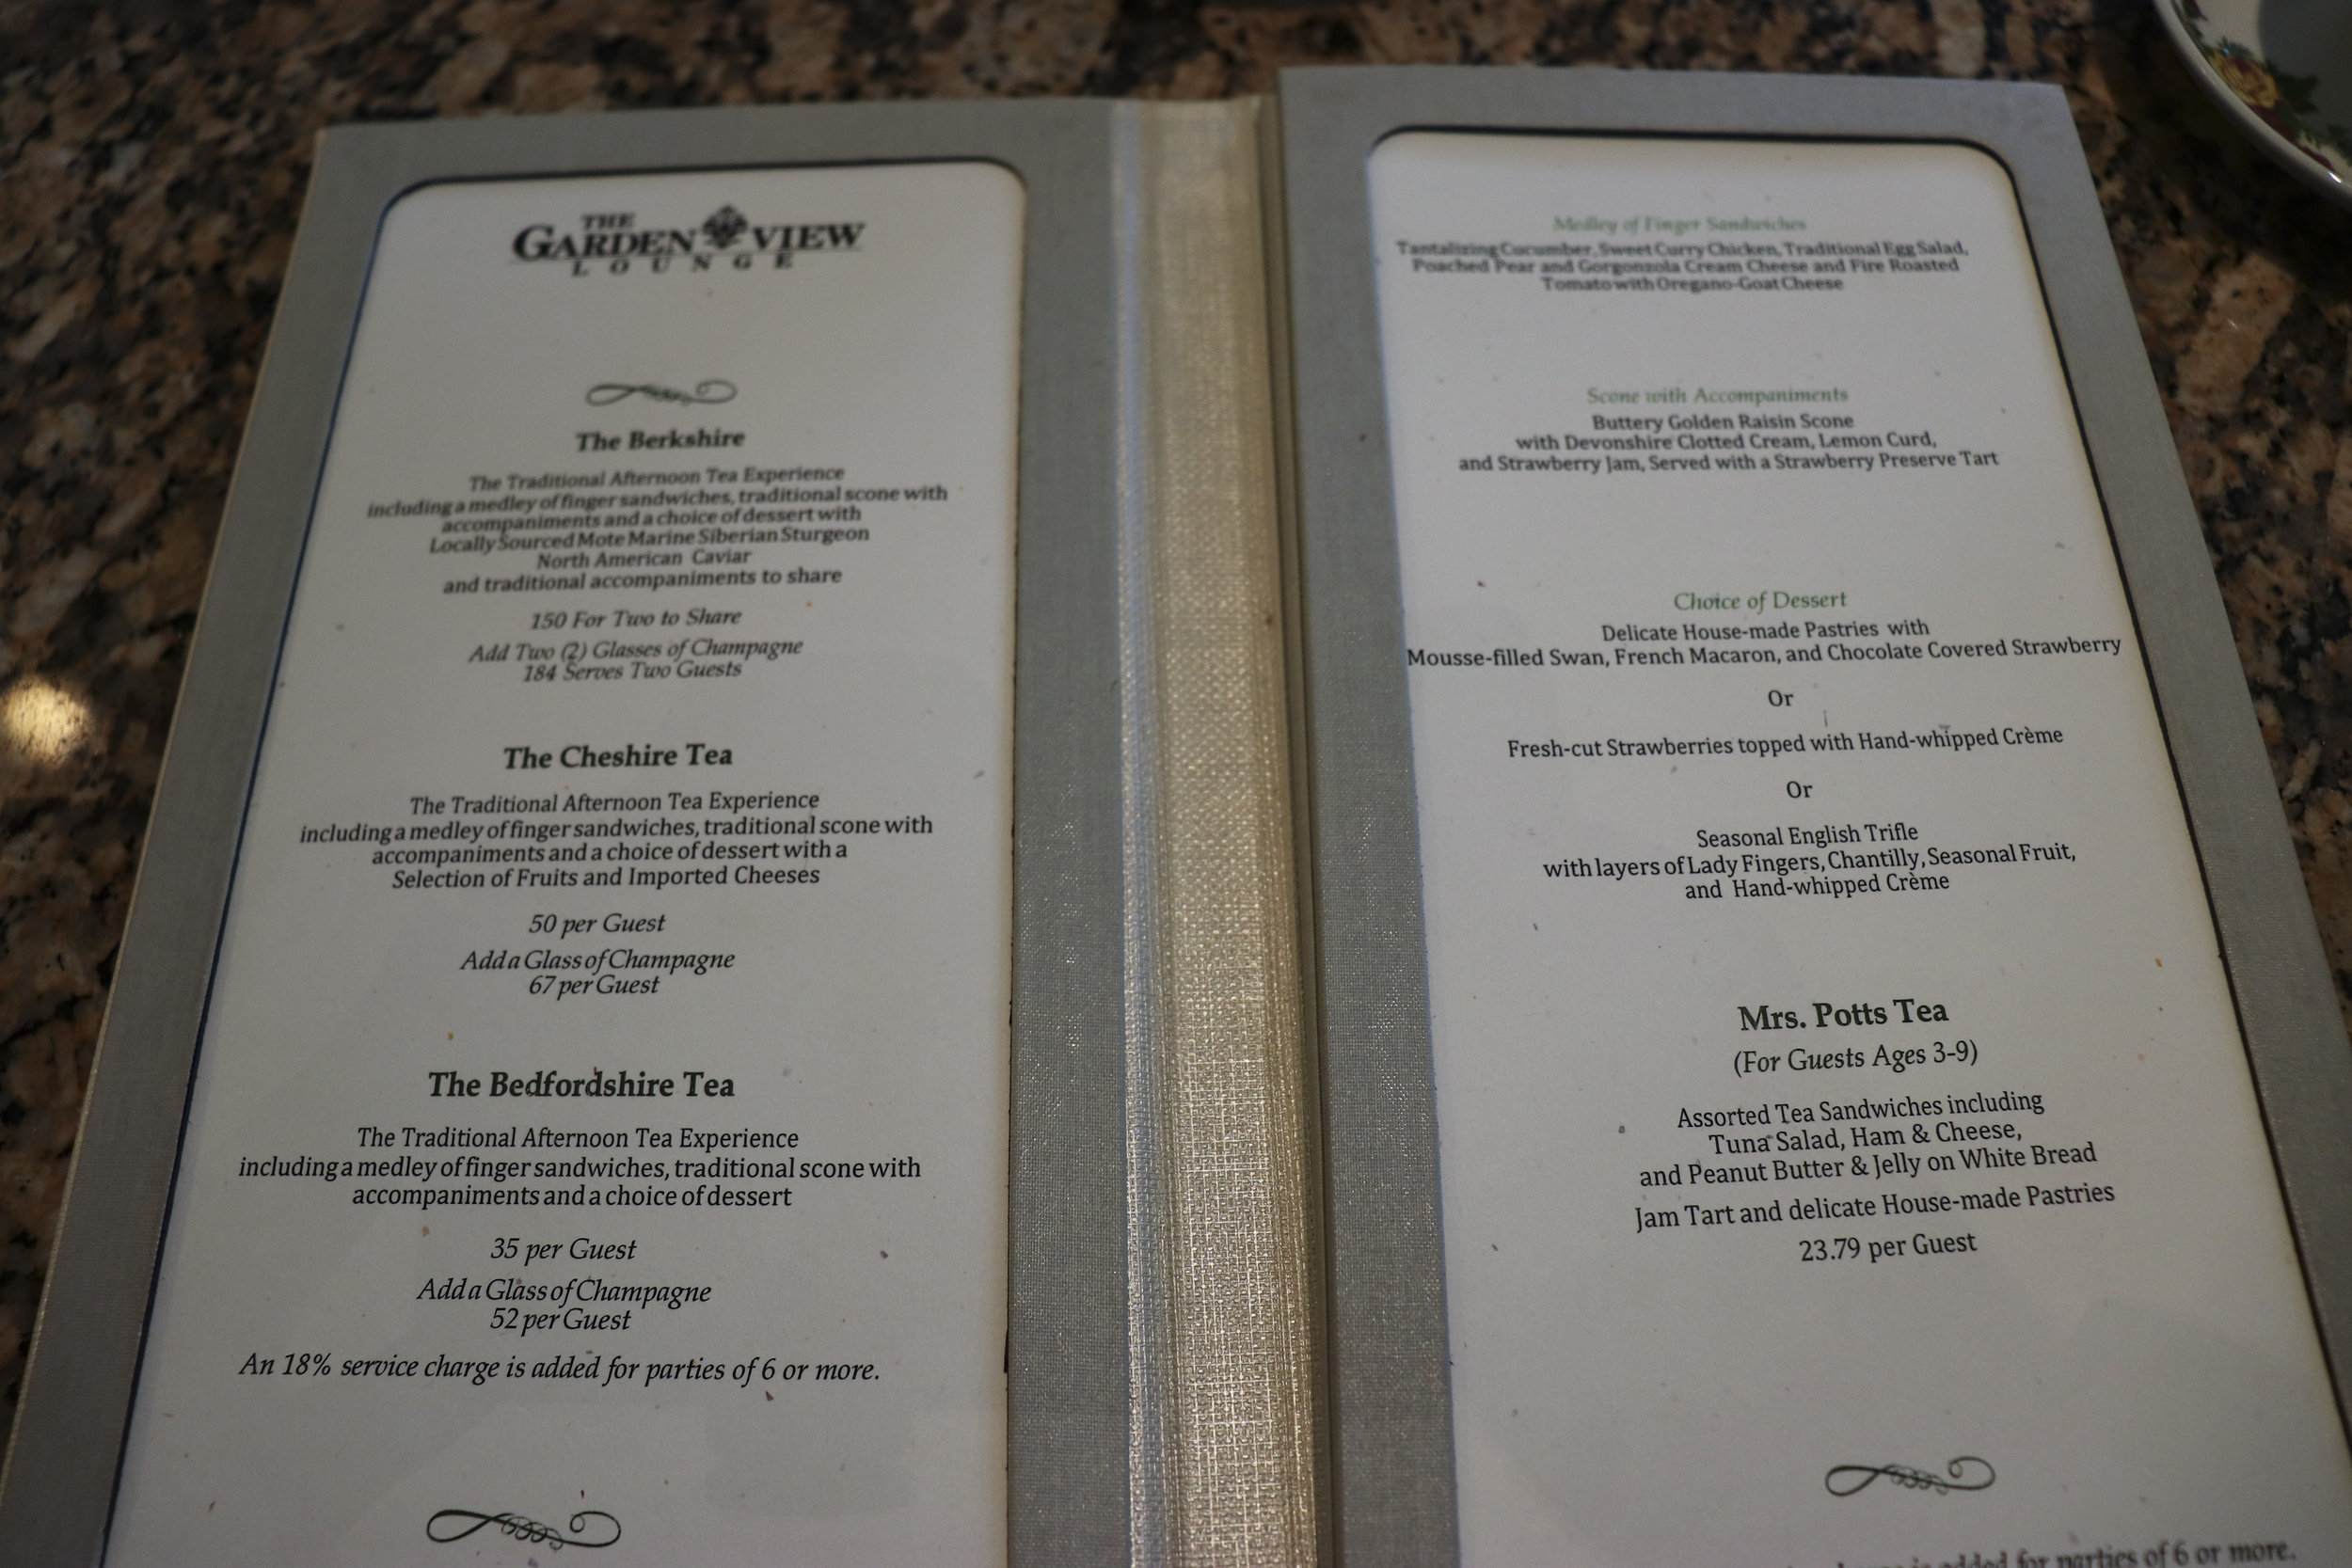 The menu of afternoon tea packages. (Click to enlarge)